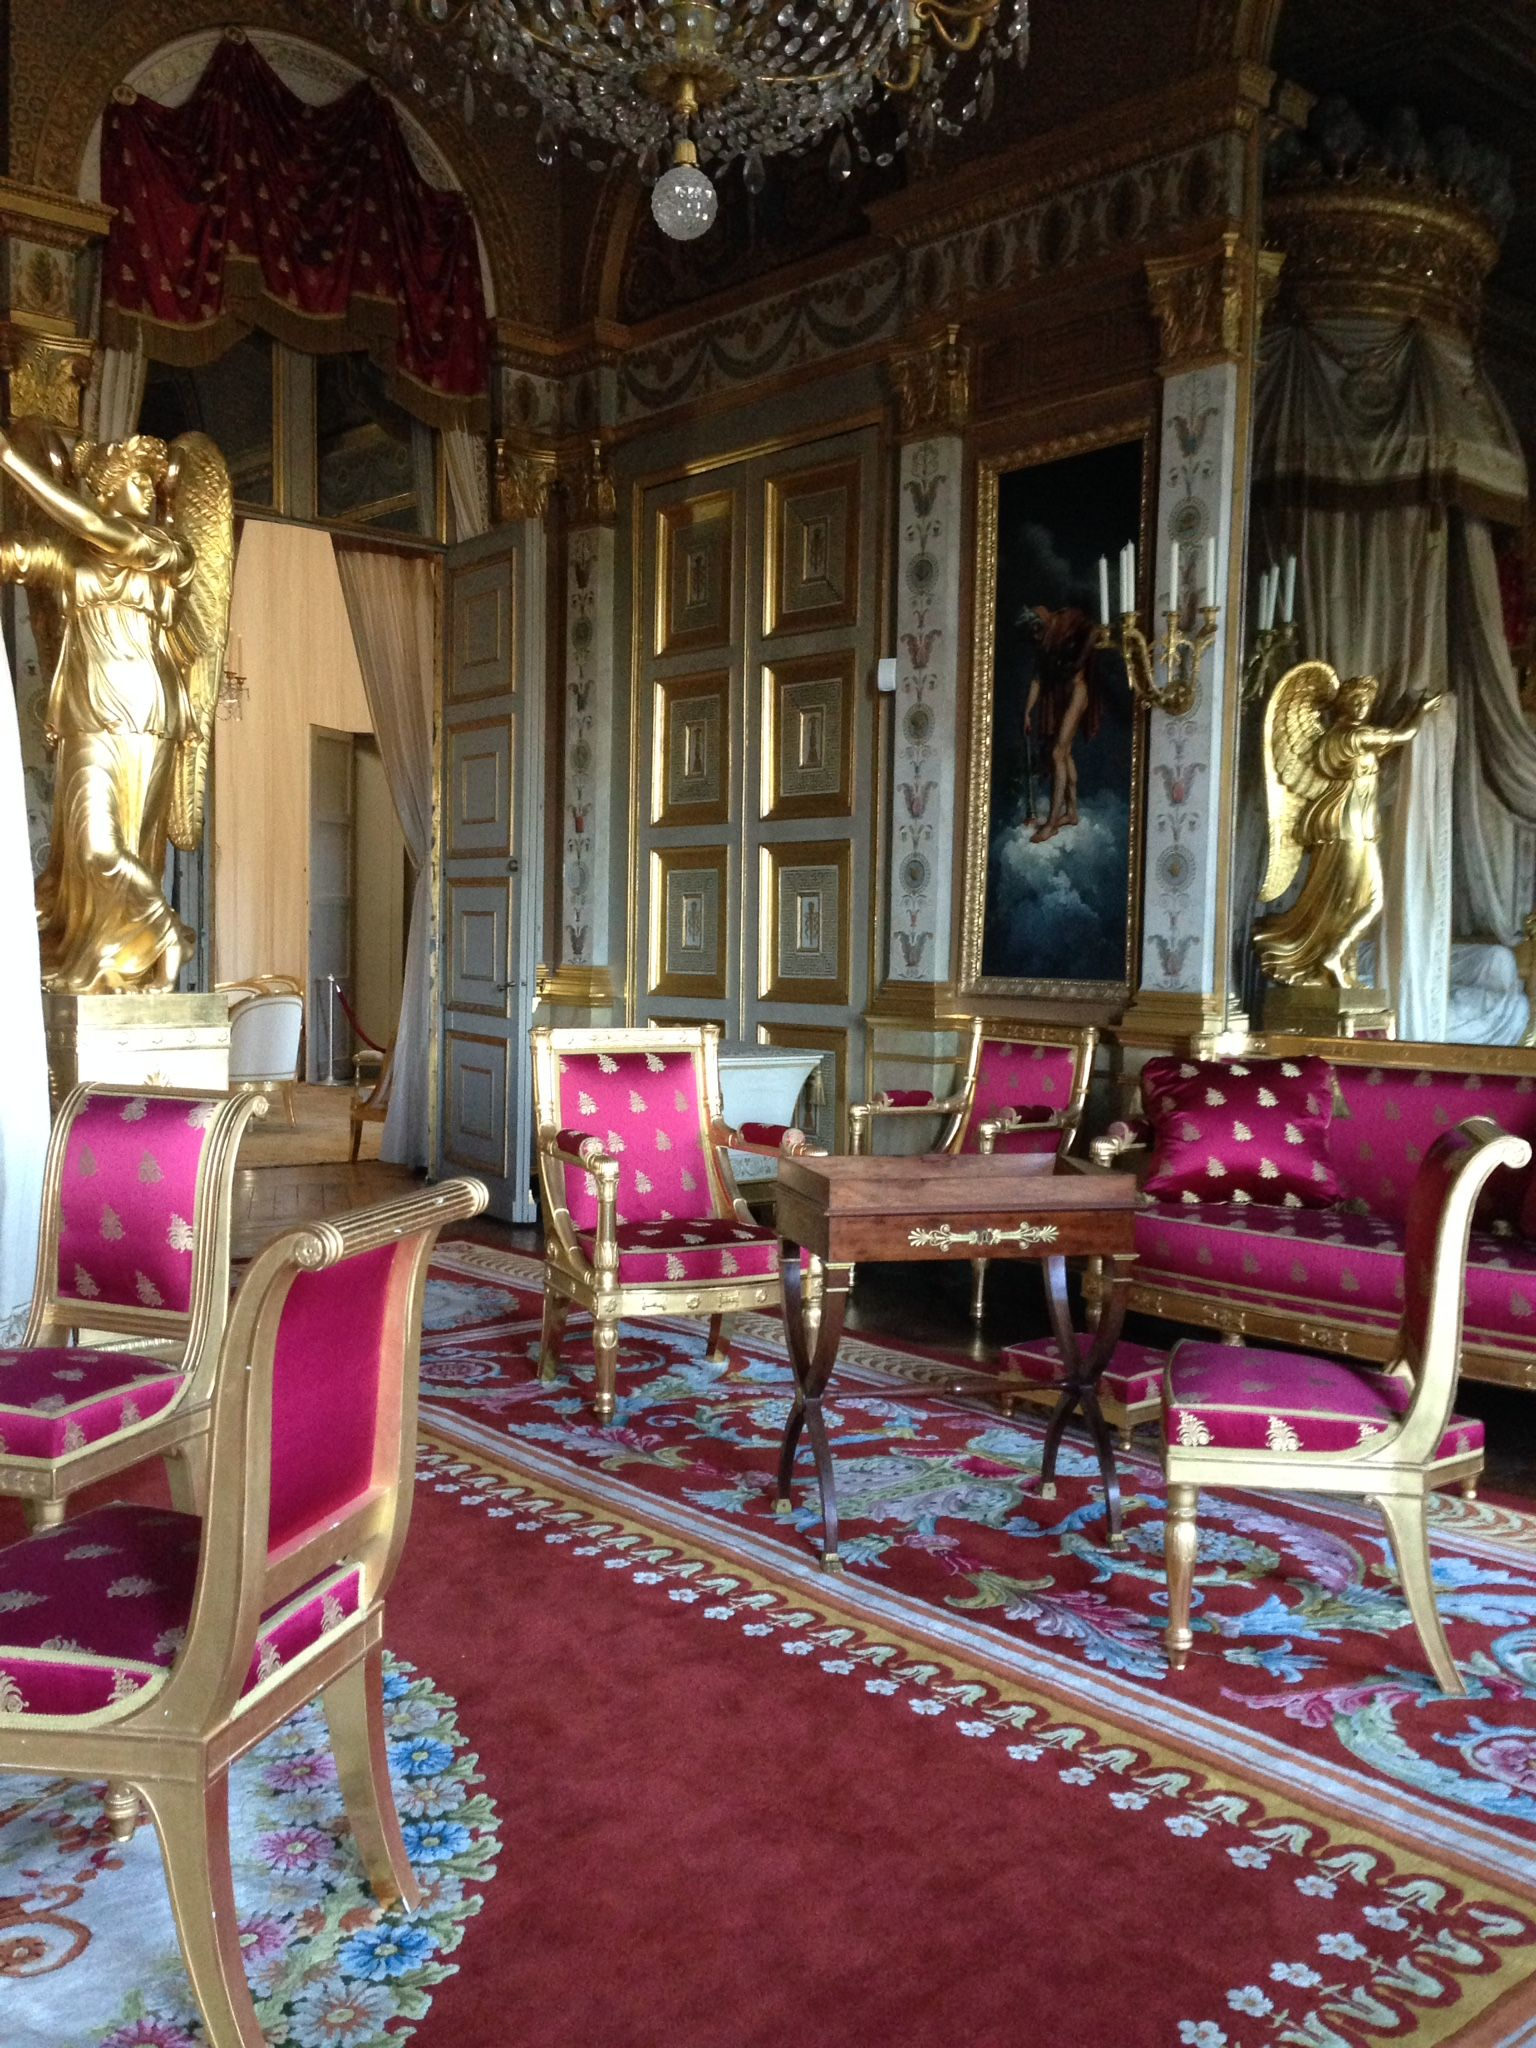 chateau de compiegne interior france only interior design pinterest ch teaux france et. Black Bedroom Furniture Sets. Home Design Ideas